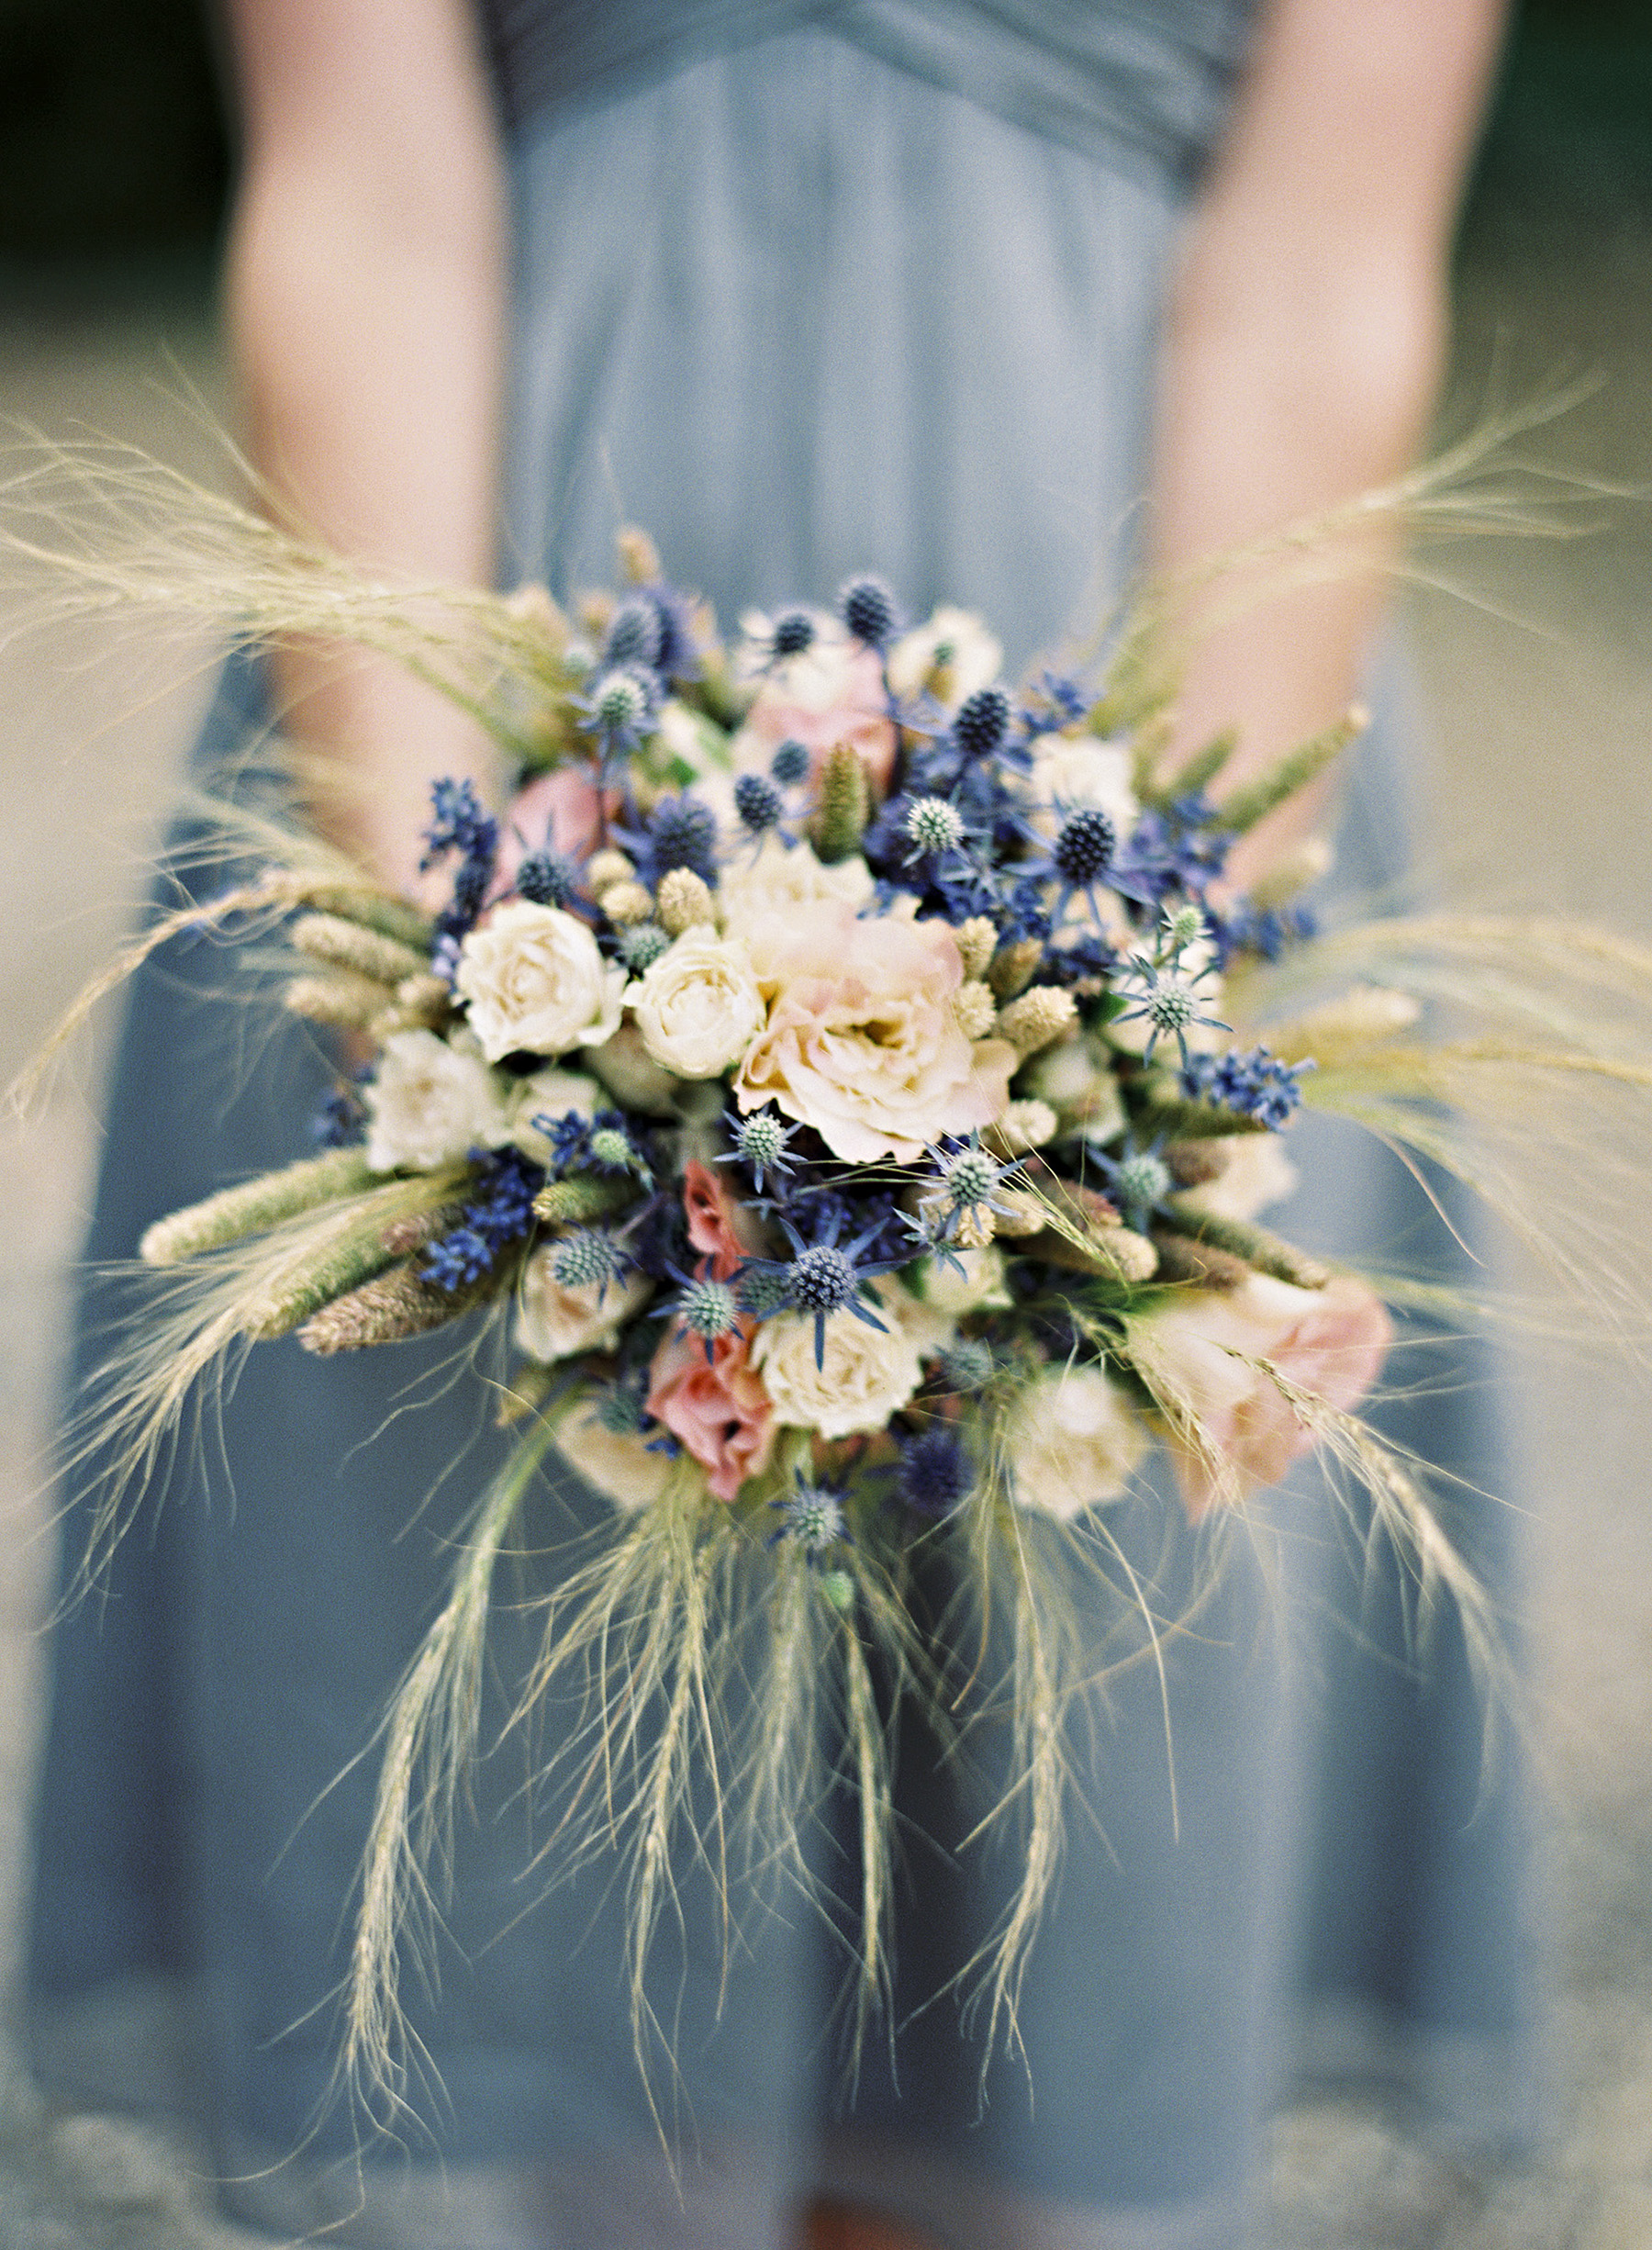 Dried and Fresh Flower Bouquet